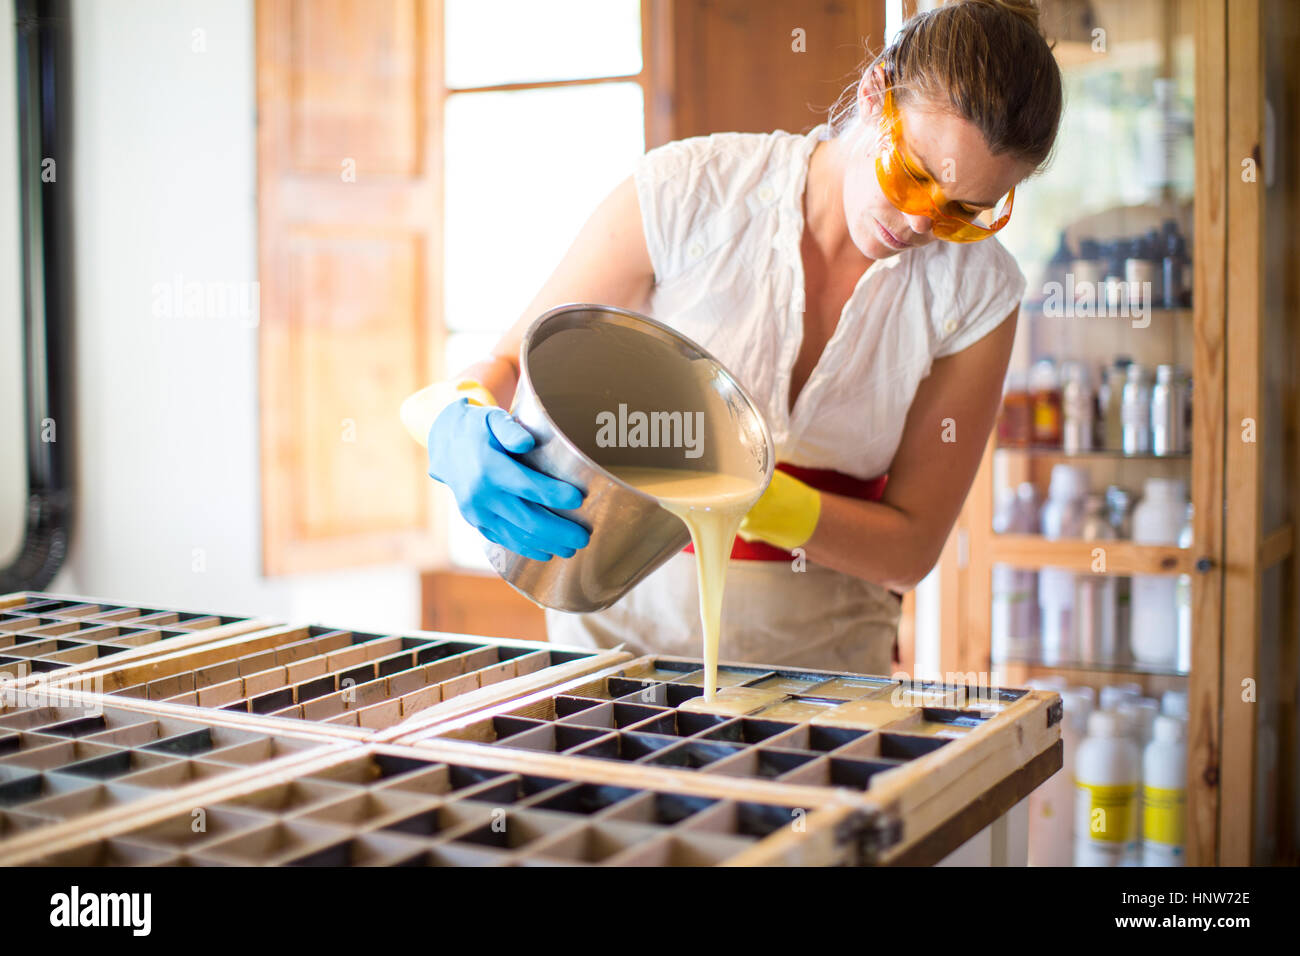 Young woman pouring liquid into soap mould in handmade soap workshop - Stock Image